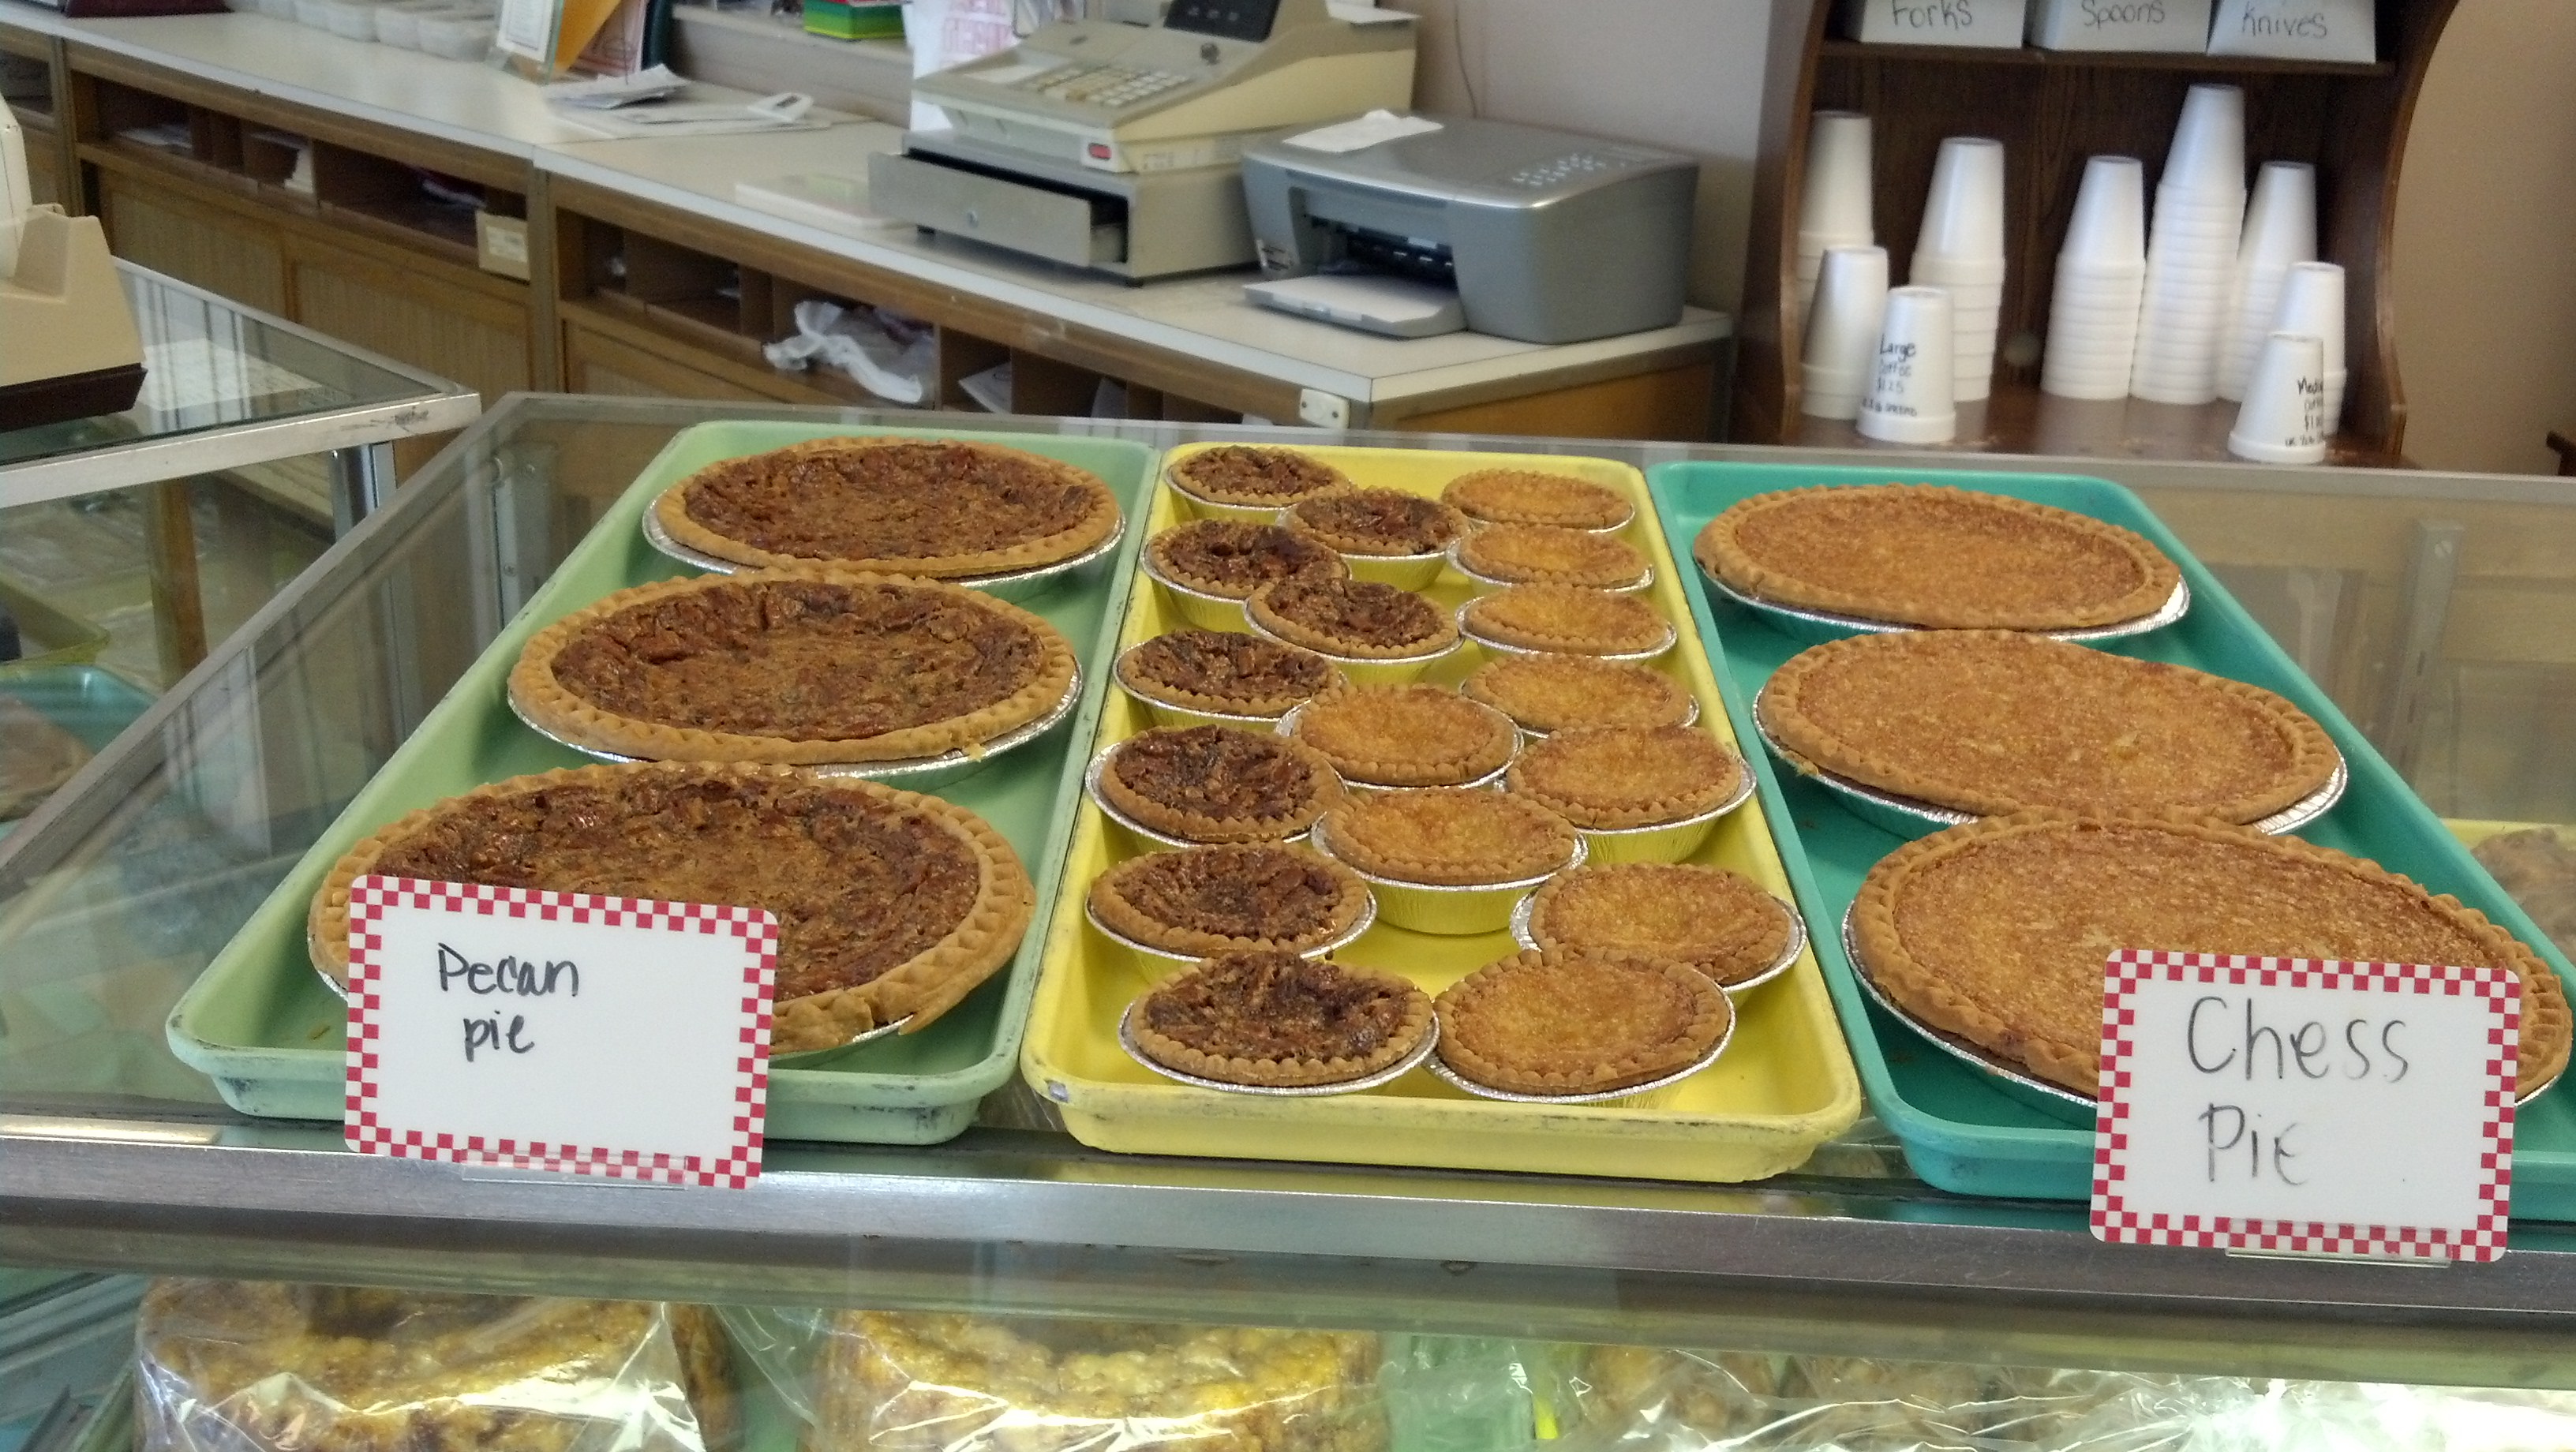 Pecan Pies, Chess Pies and tarts